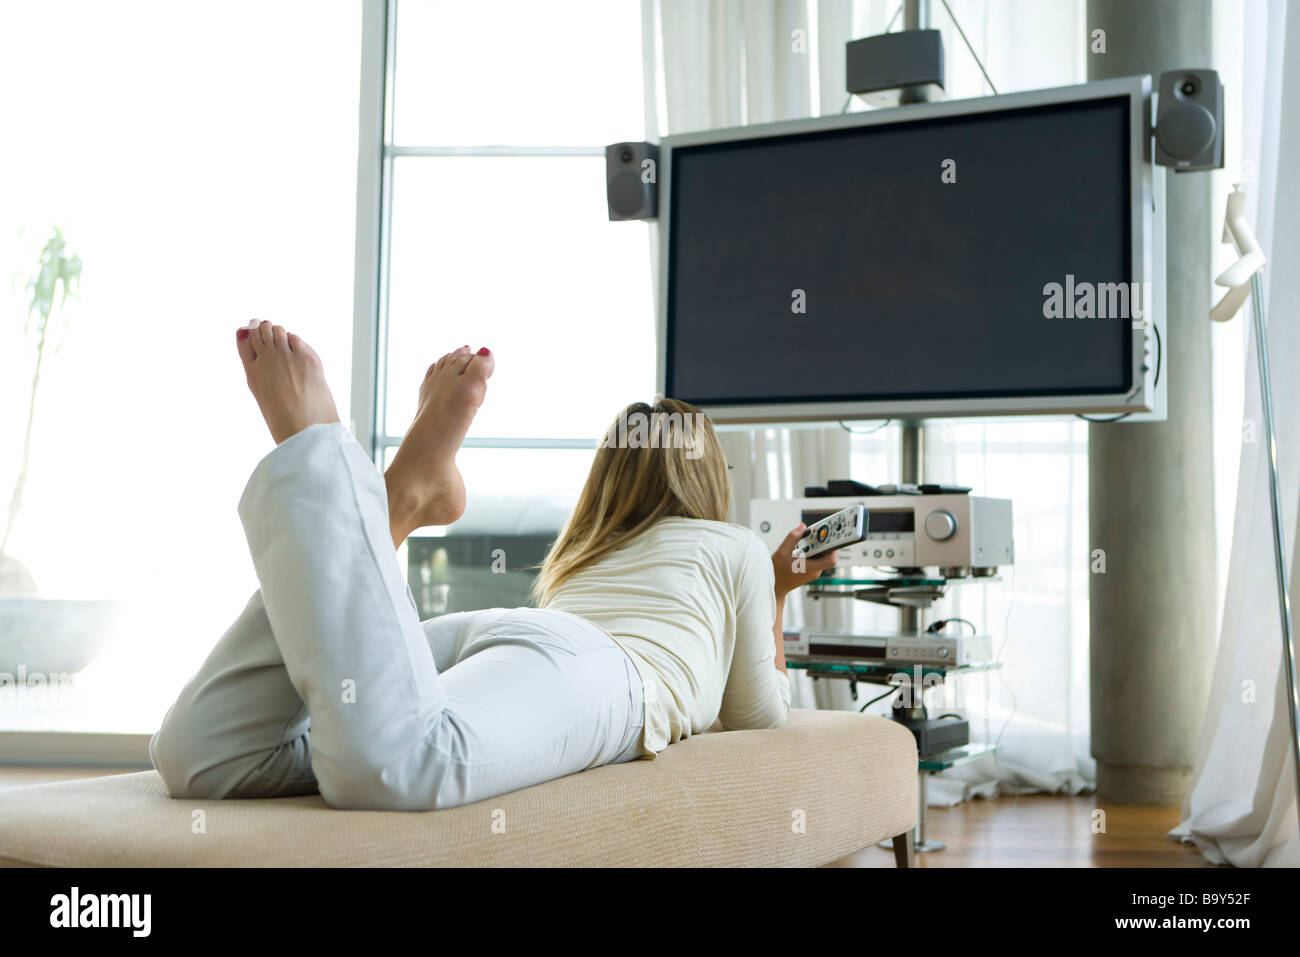 Female lying on stomach watching flat screen TV with surround sound, remote control in hand, rear view - Stock Image